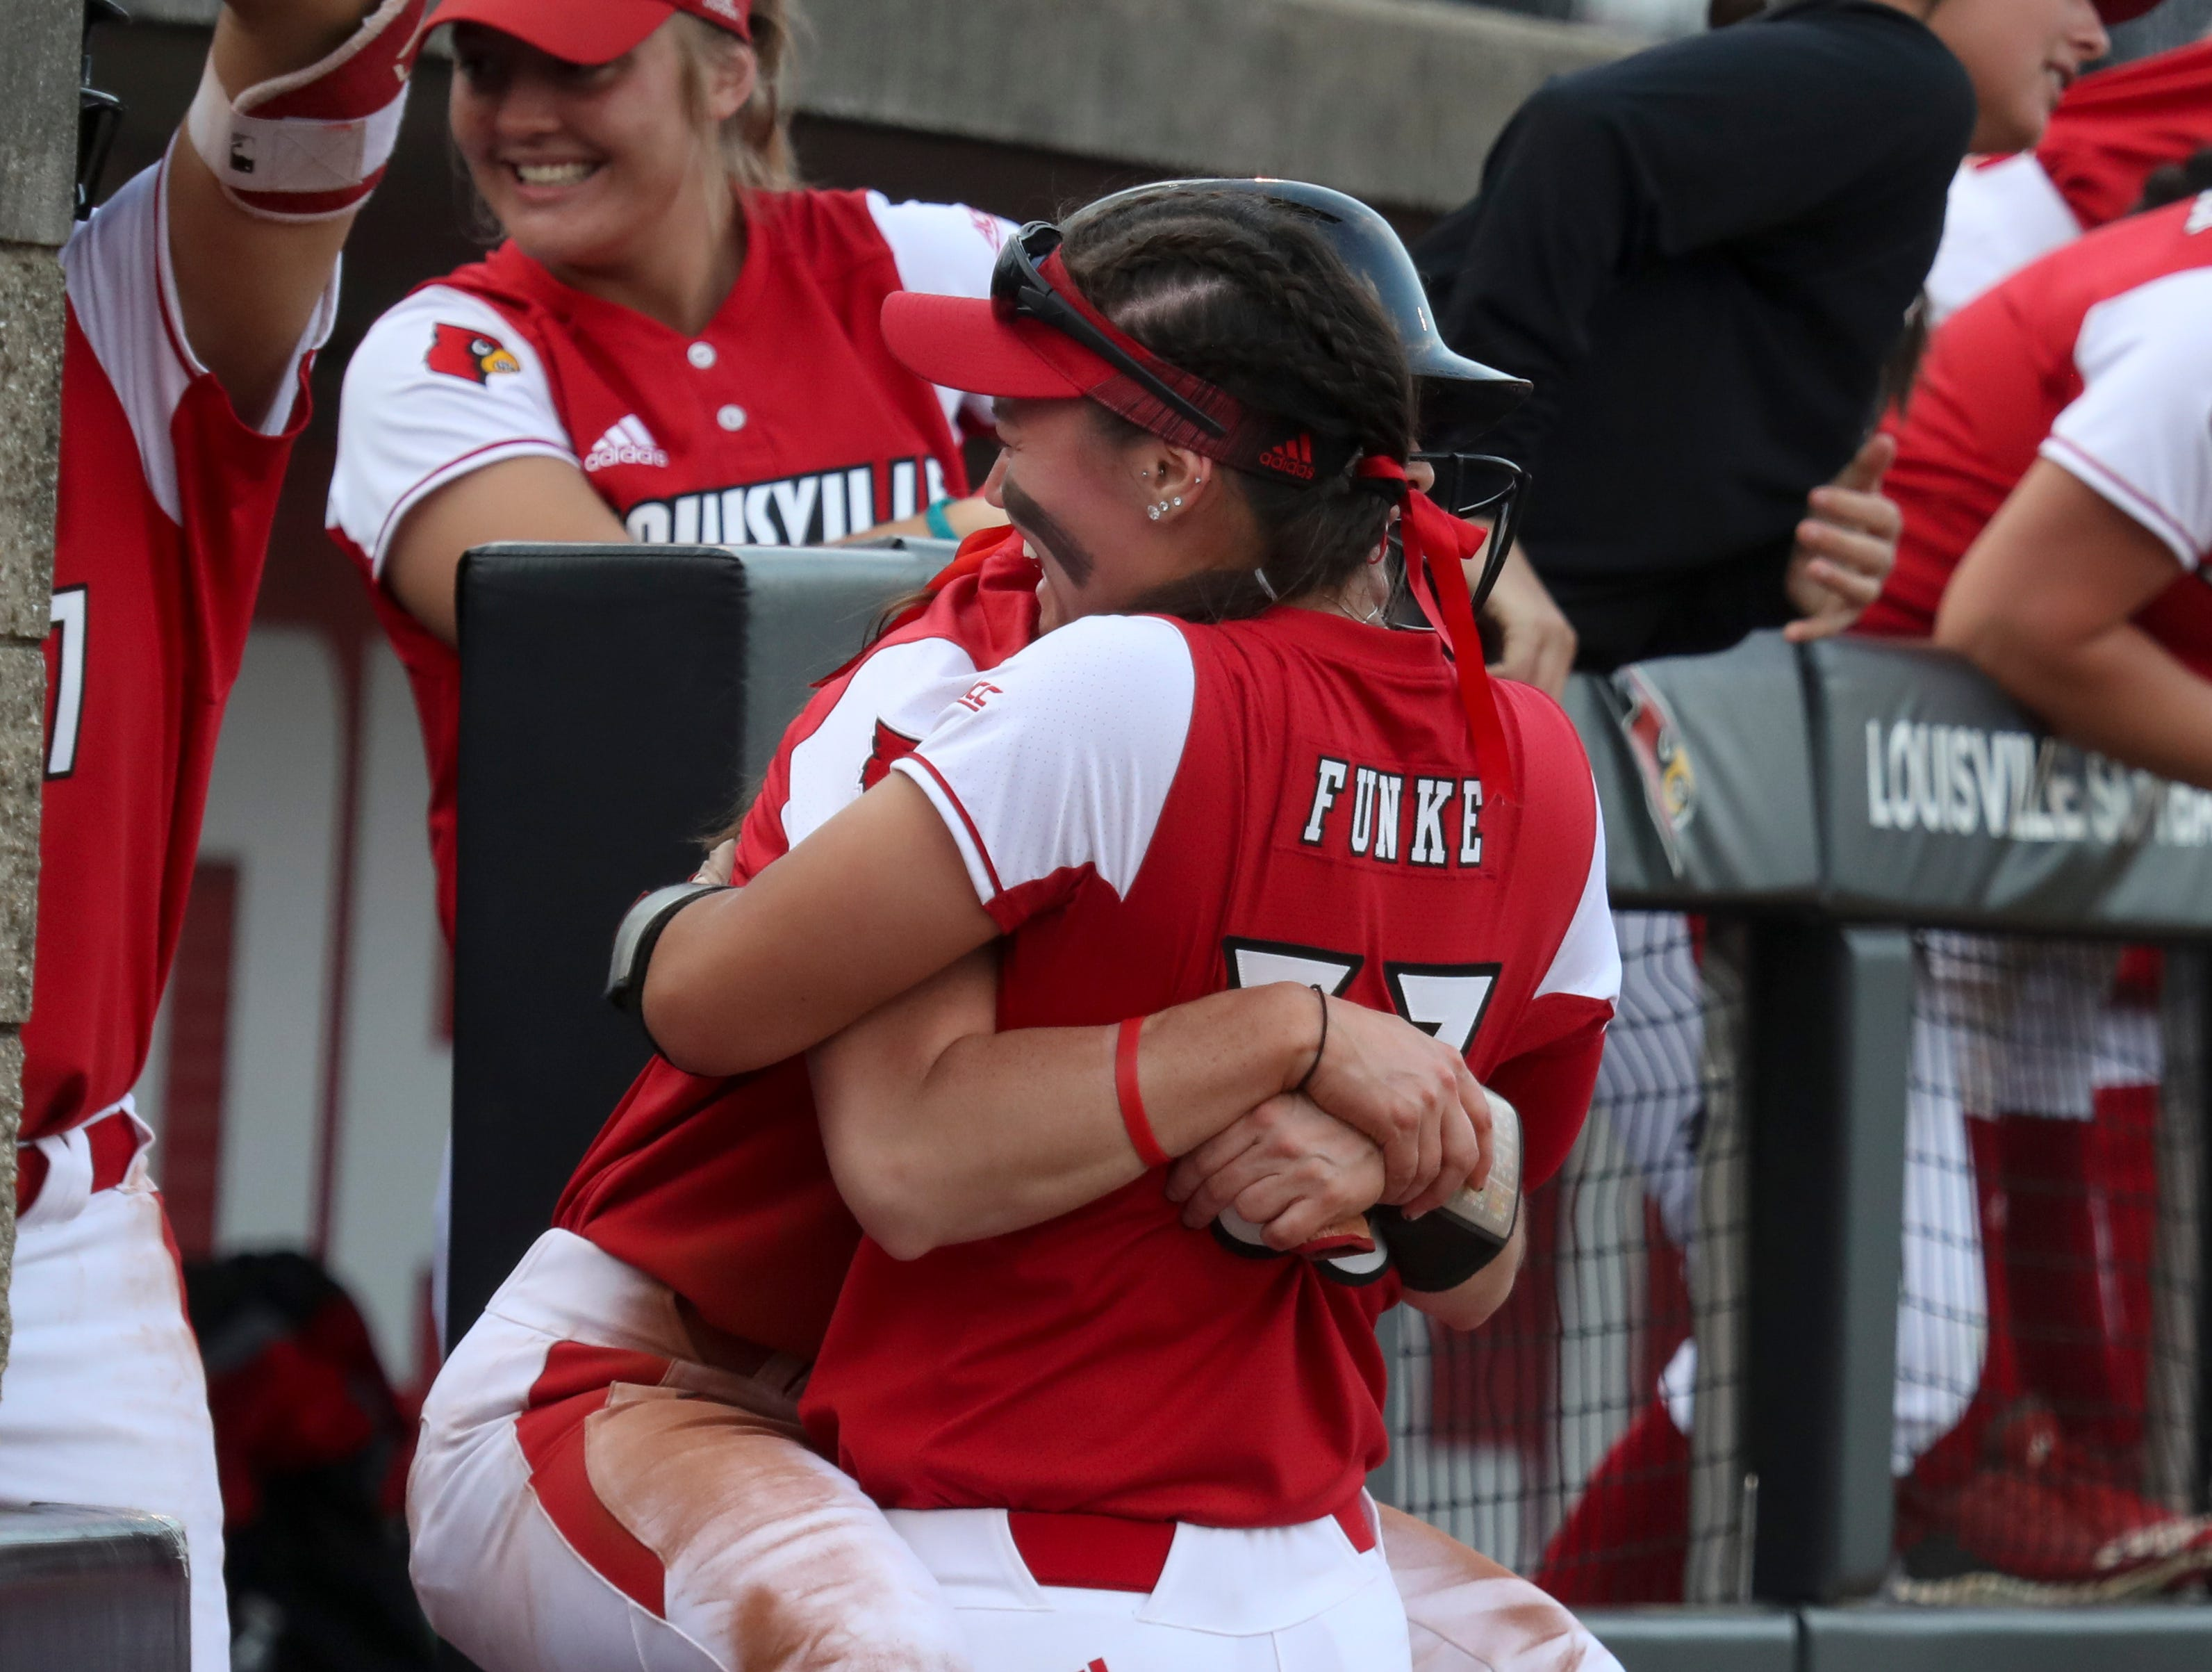 Louisville's Celene Funke and teammates celebrate another run against Kentucky on April 17.